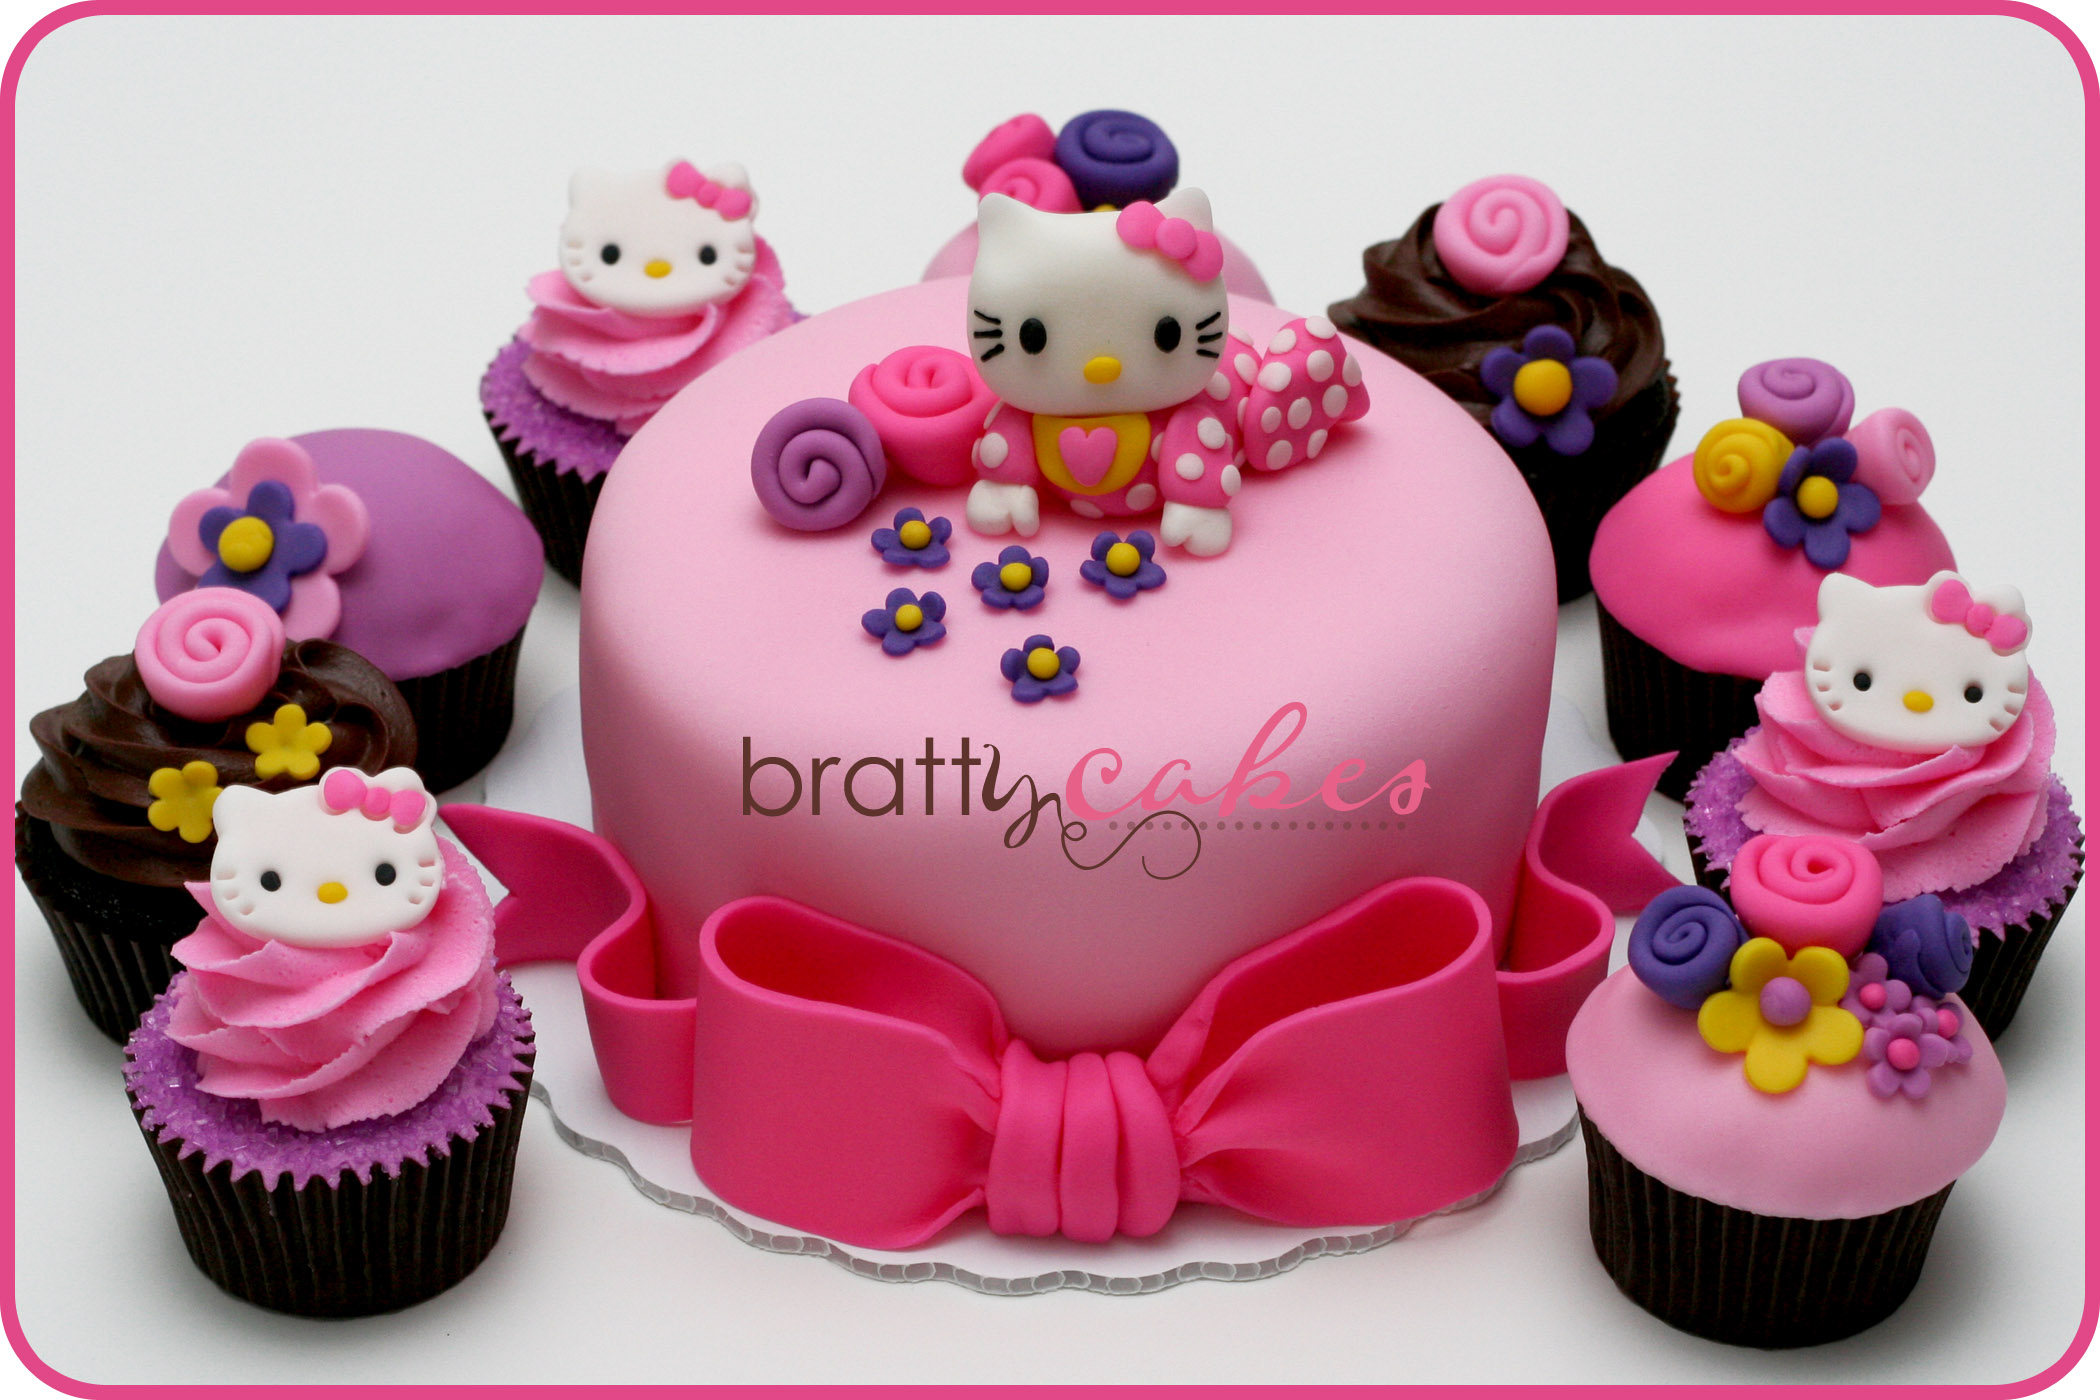 Cupcake Design Hello Kitty Cupcake Original